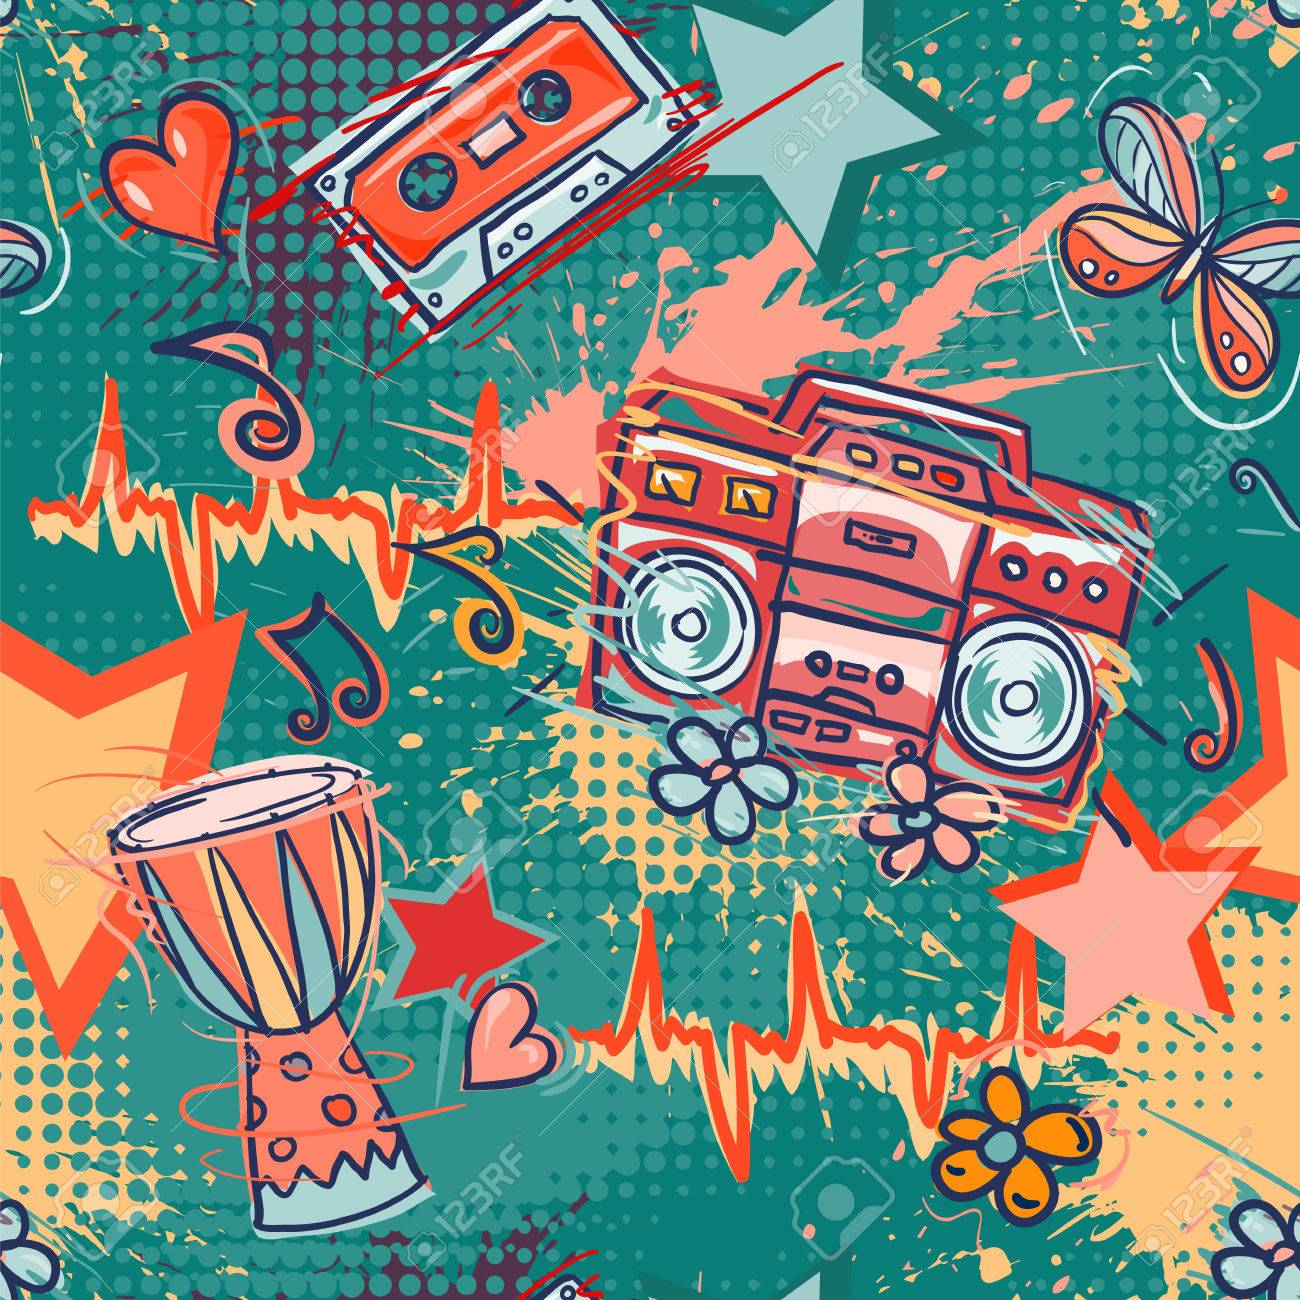 Best Wallpaper Music Tone - 56648956-bright-colored-seamless-pattern-in-hippie-style-abstract-background-with-notes-music-tape-retro-boom  HD_1002025.jpg